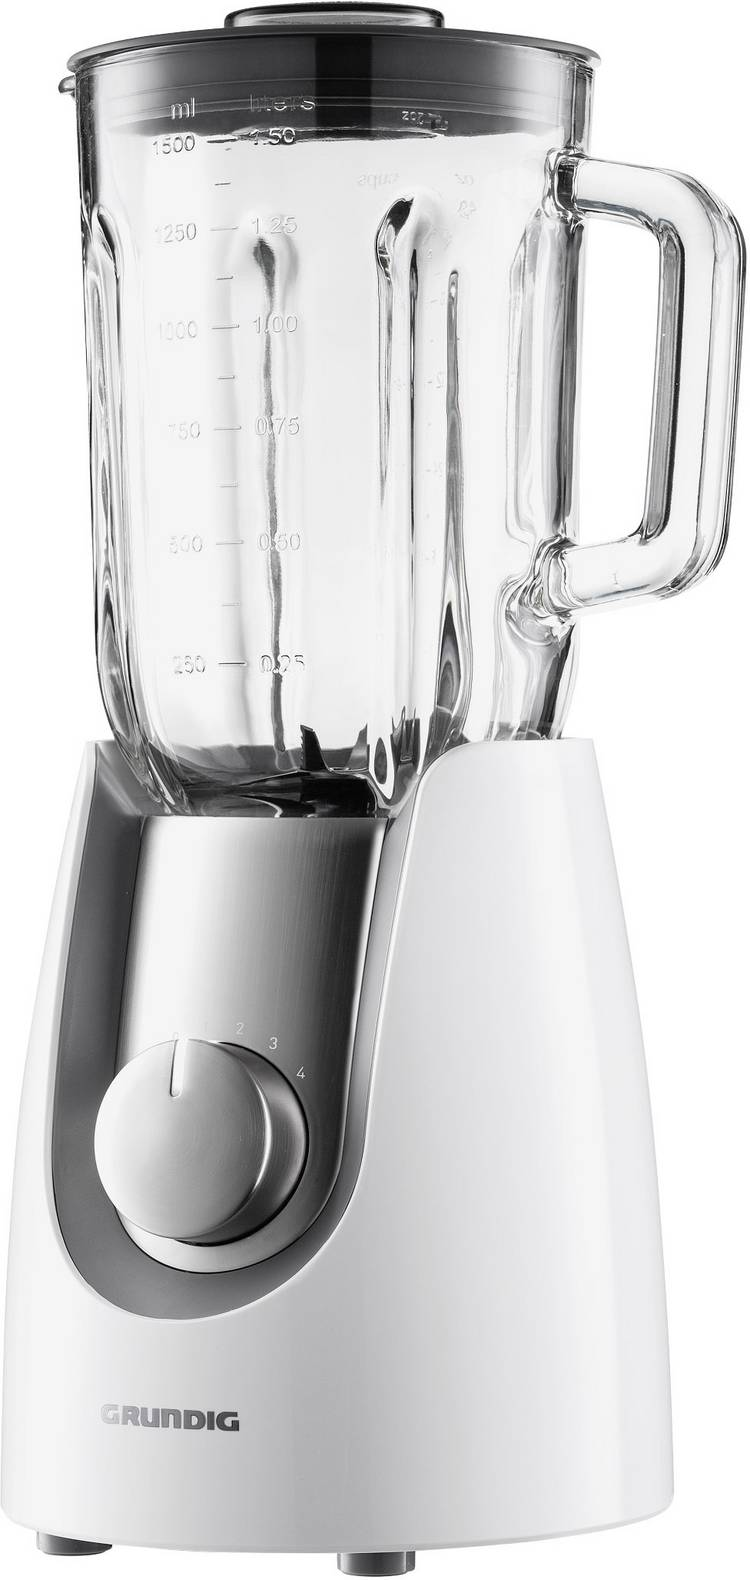 Image of Blender Grundig SM7280w 1.5 l 600 W